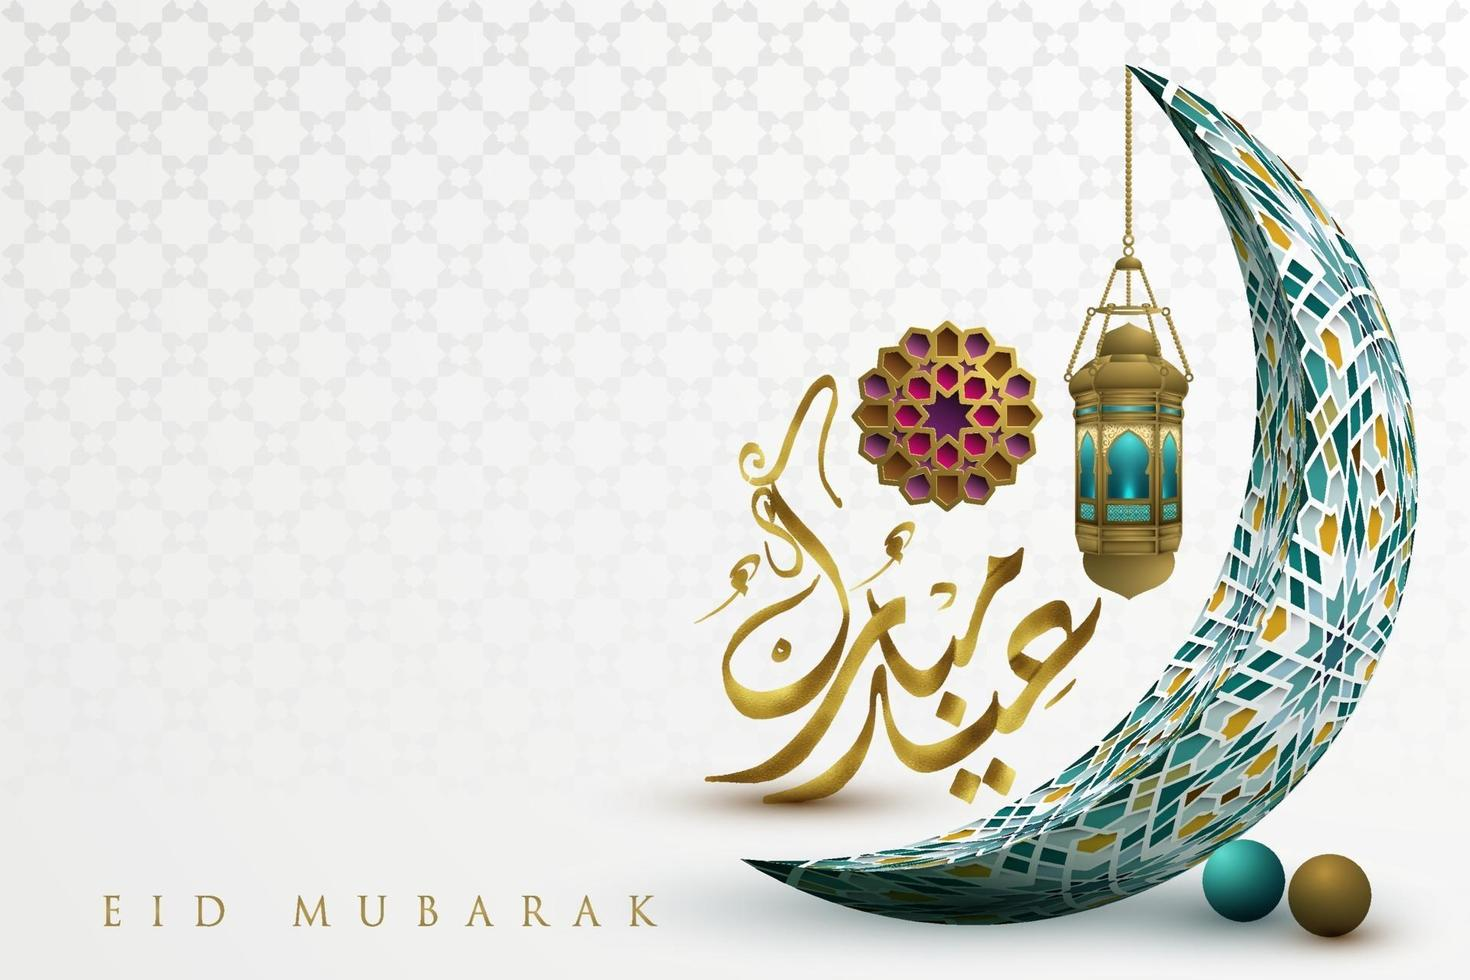 Eid Mubarak Greeting Card Islamic Illustration Background Vector Design With Beautiful Moon And Arabic Calligraphy 2145486 Vector Art At Vecteezy